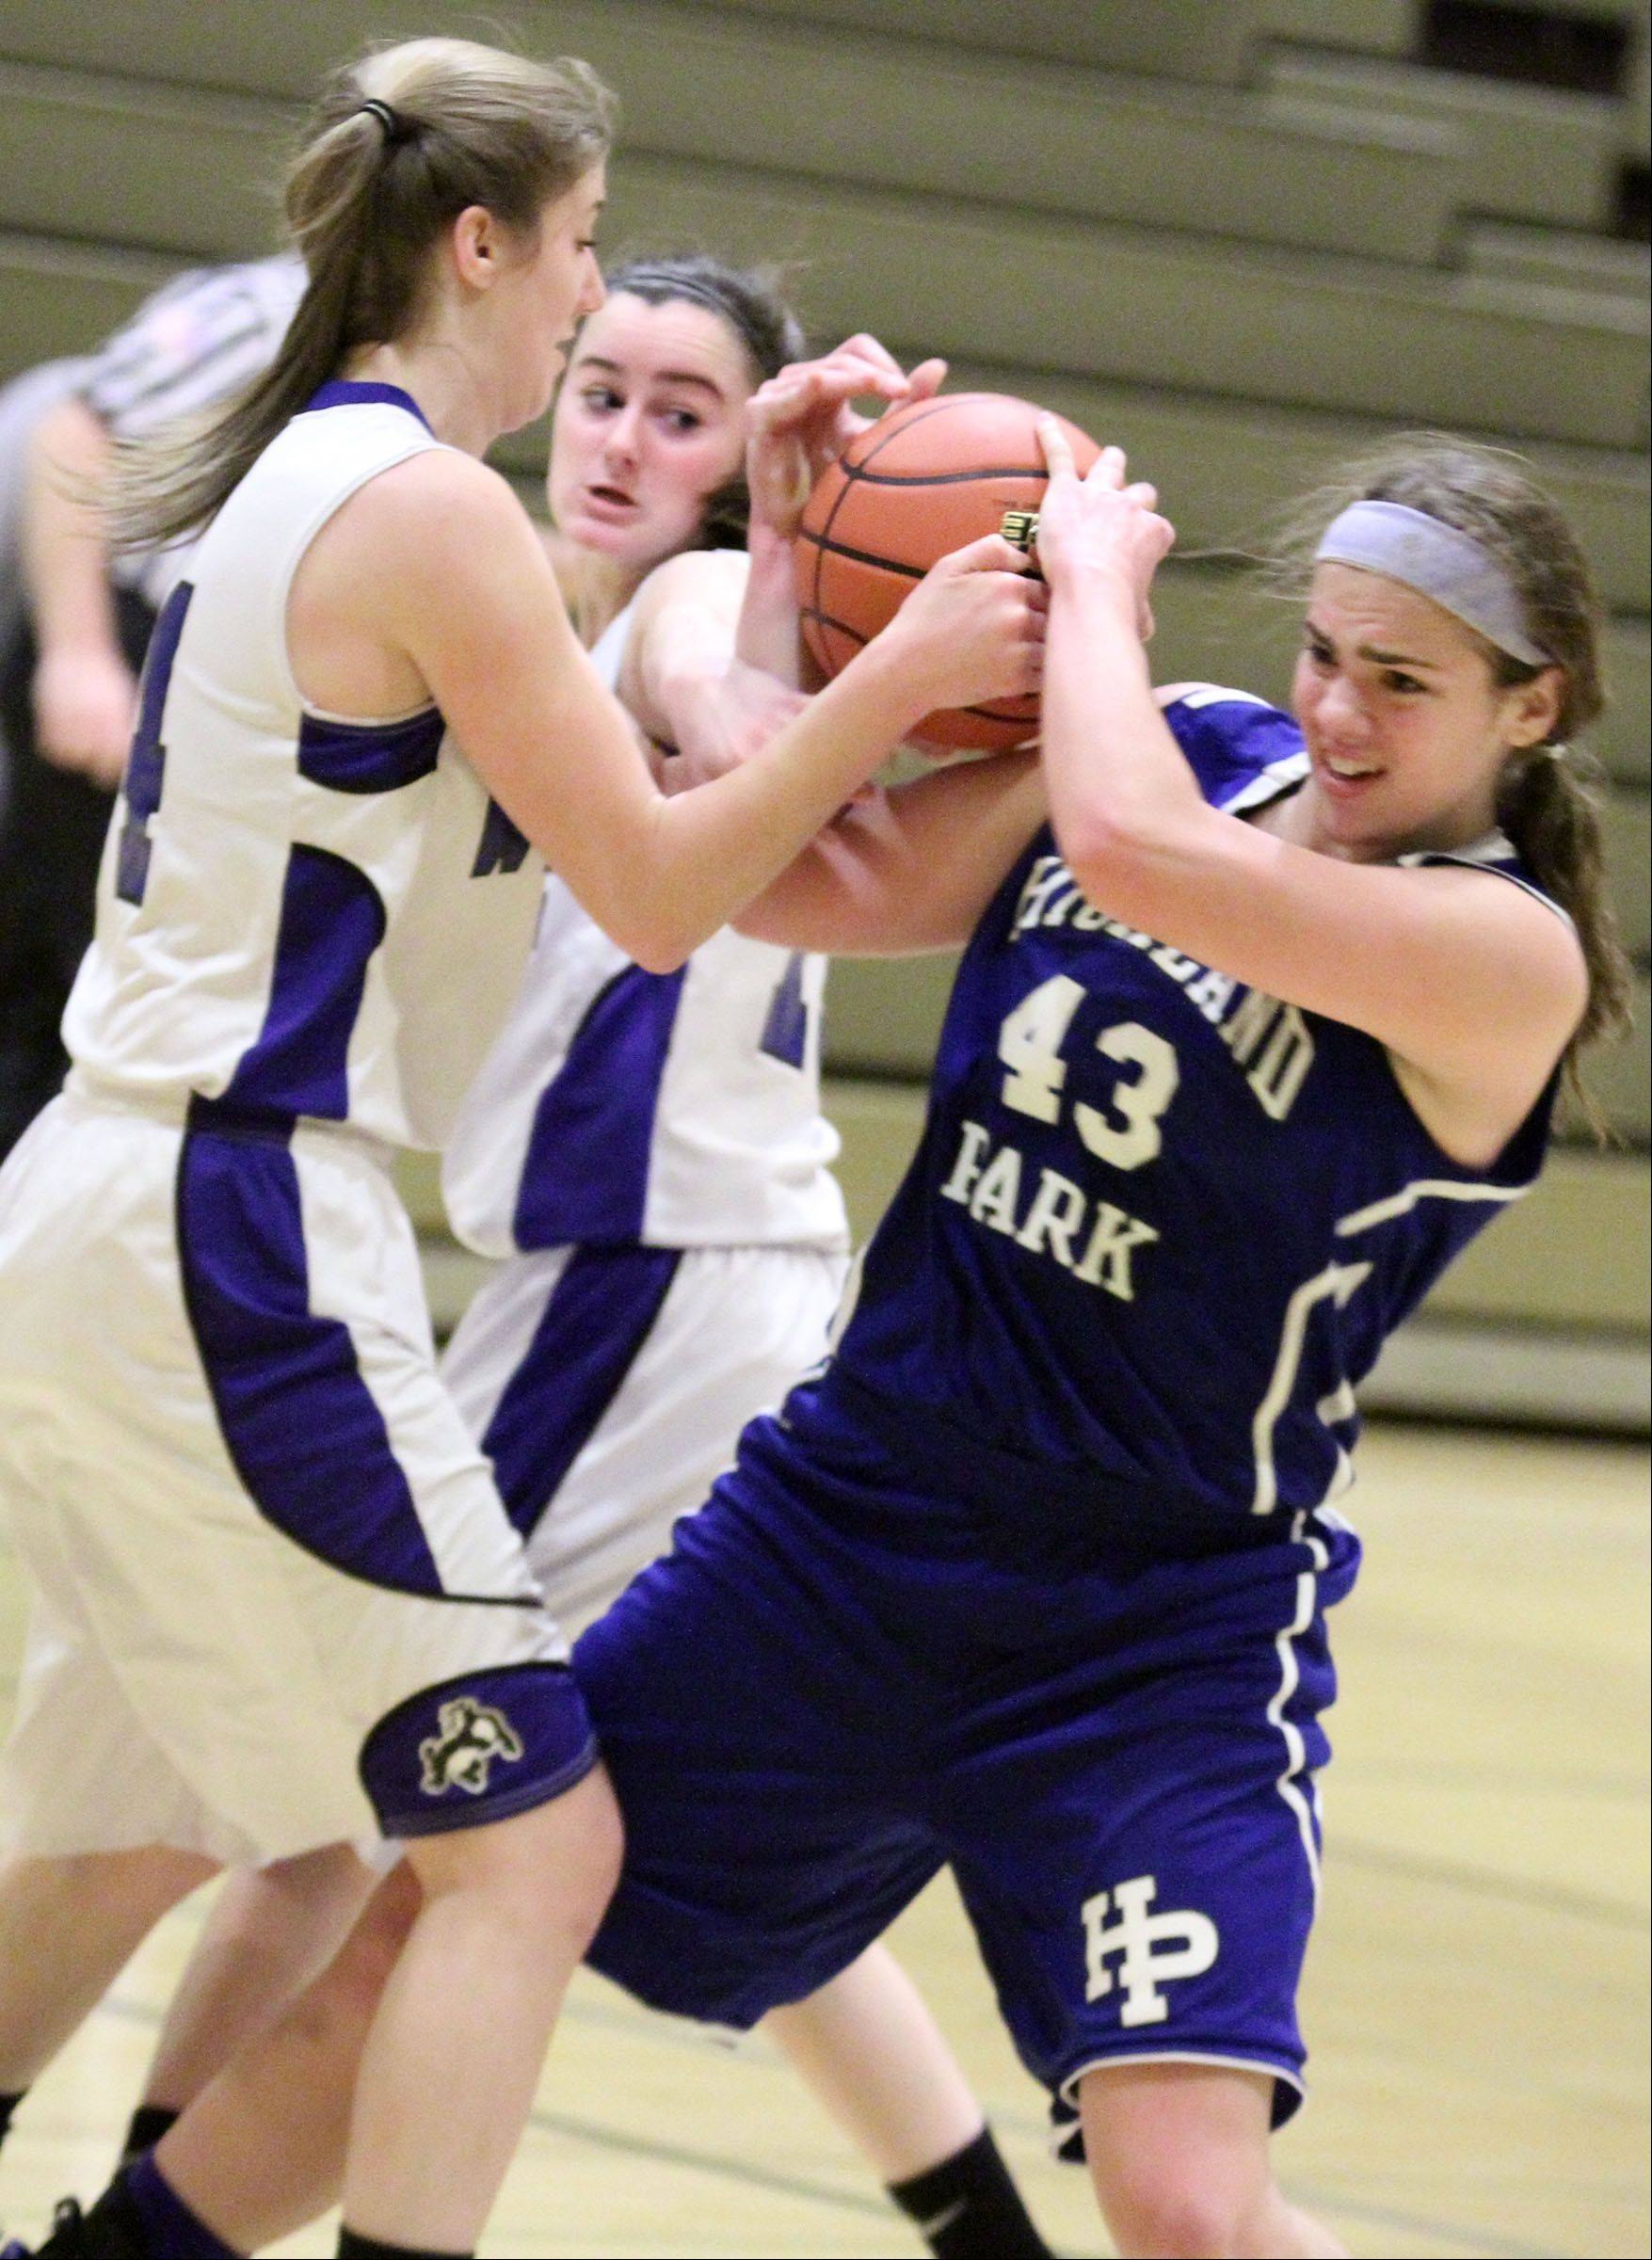 Wheeling's Hannah Dobrowski and Highland Park's Lena Munzer struggle for the ball.